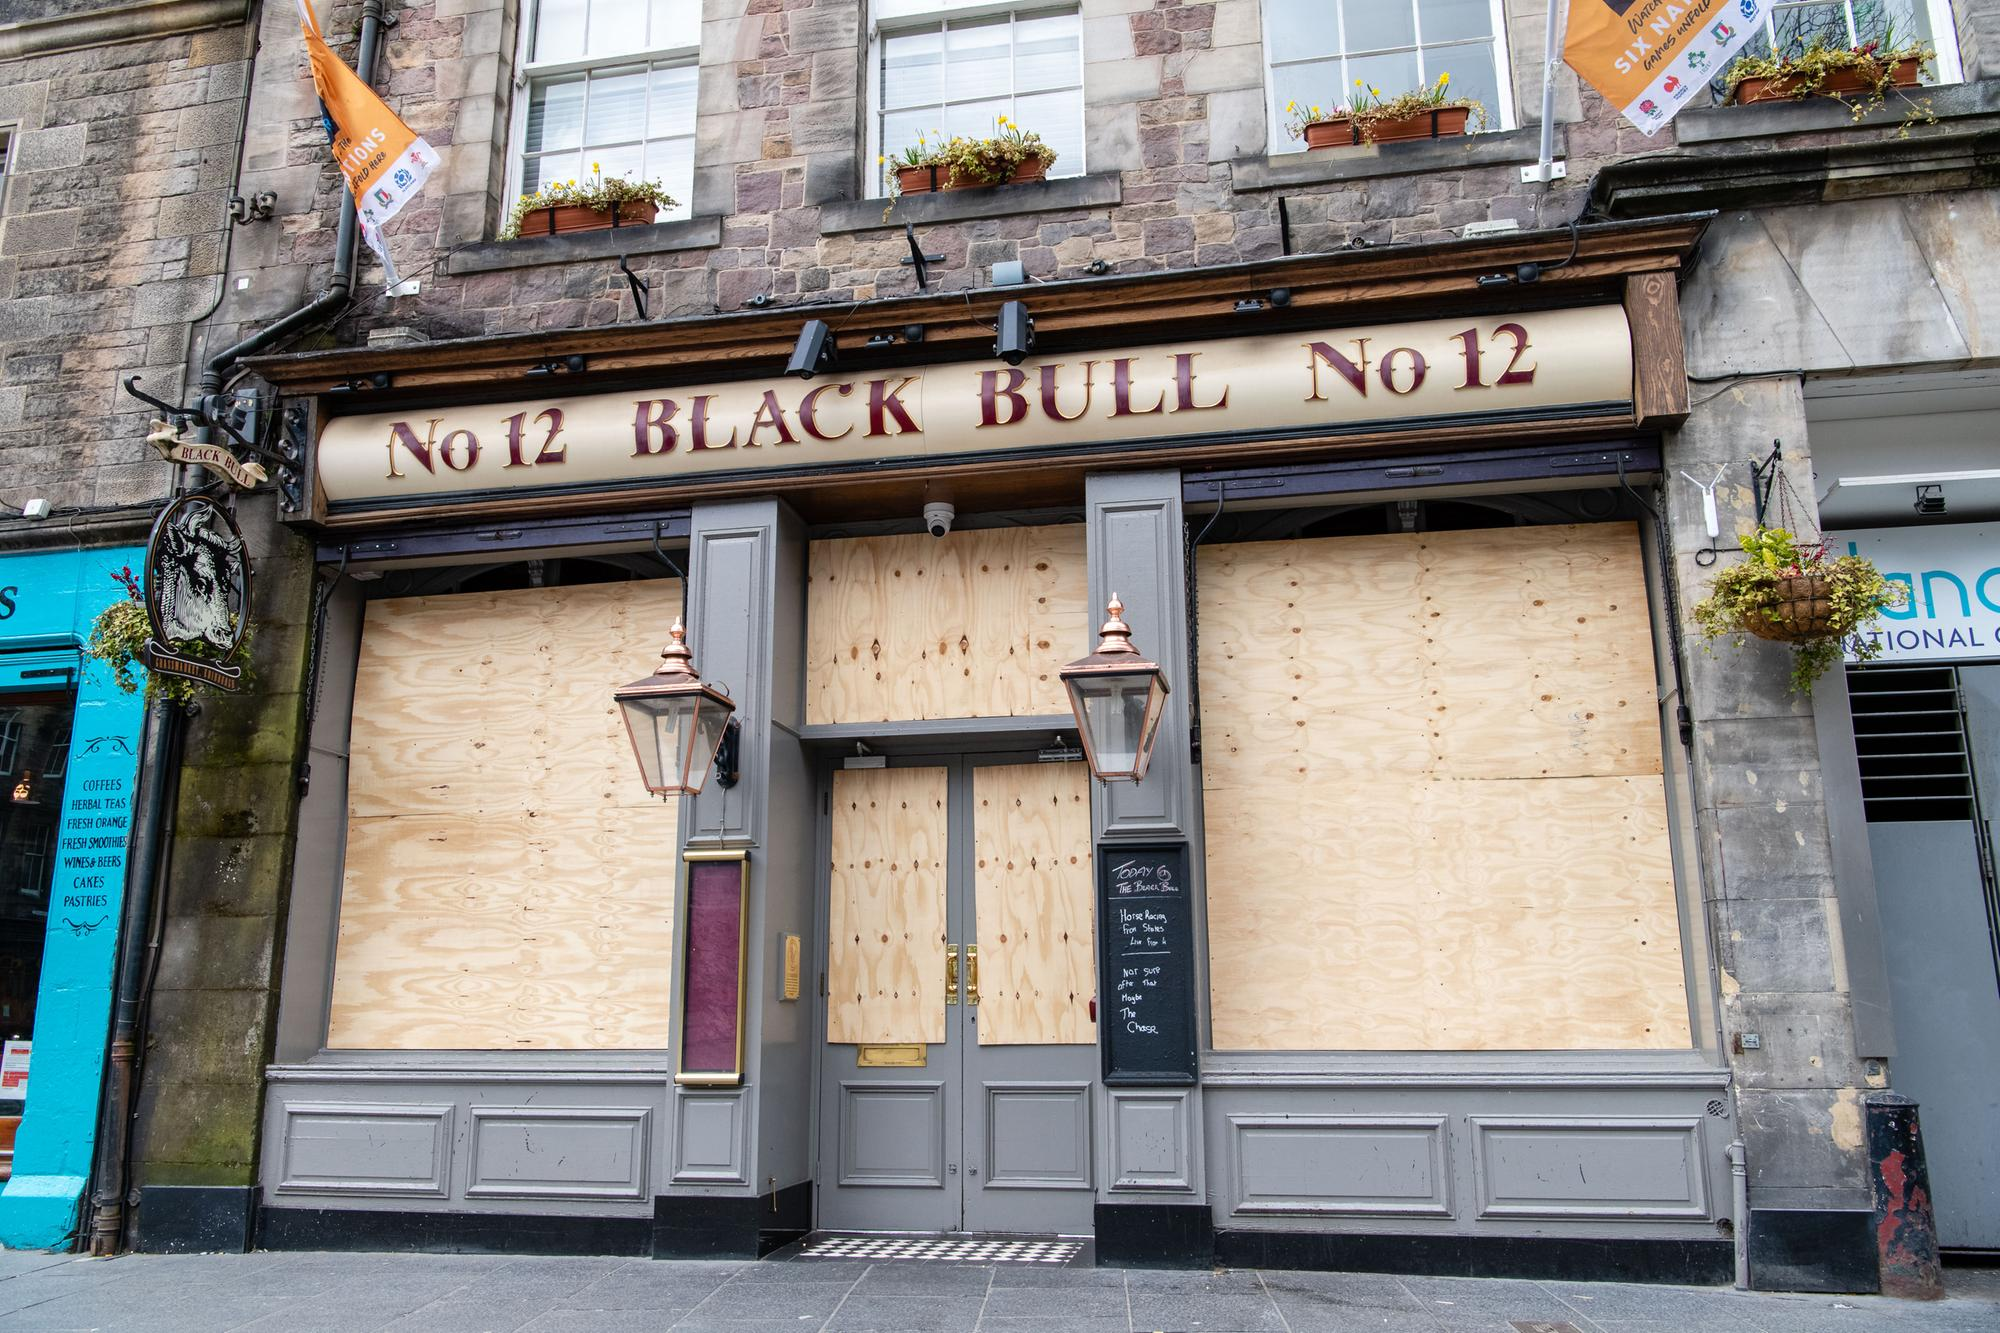 16 pictures show pubs in Scotland boarded up and closed during coronavirus lockdown